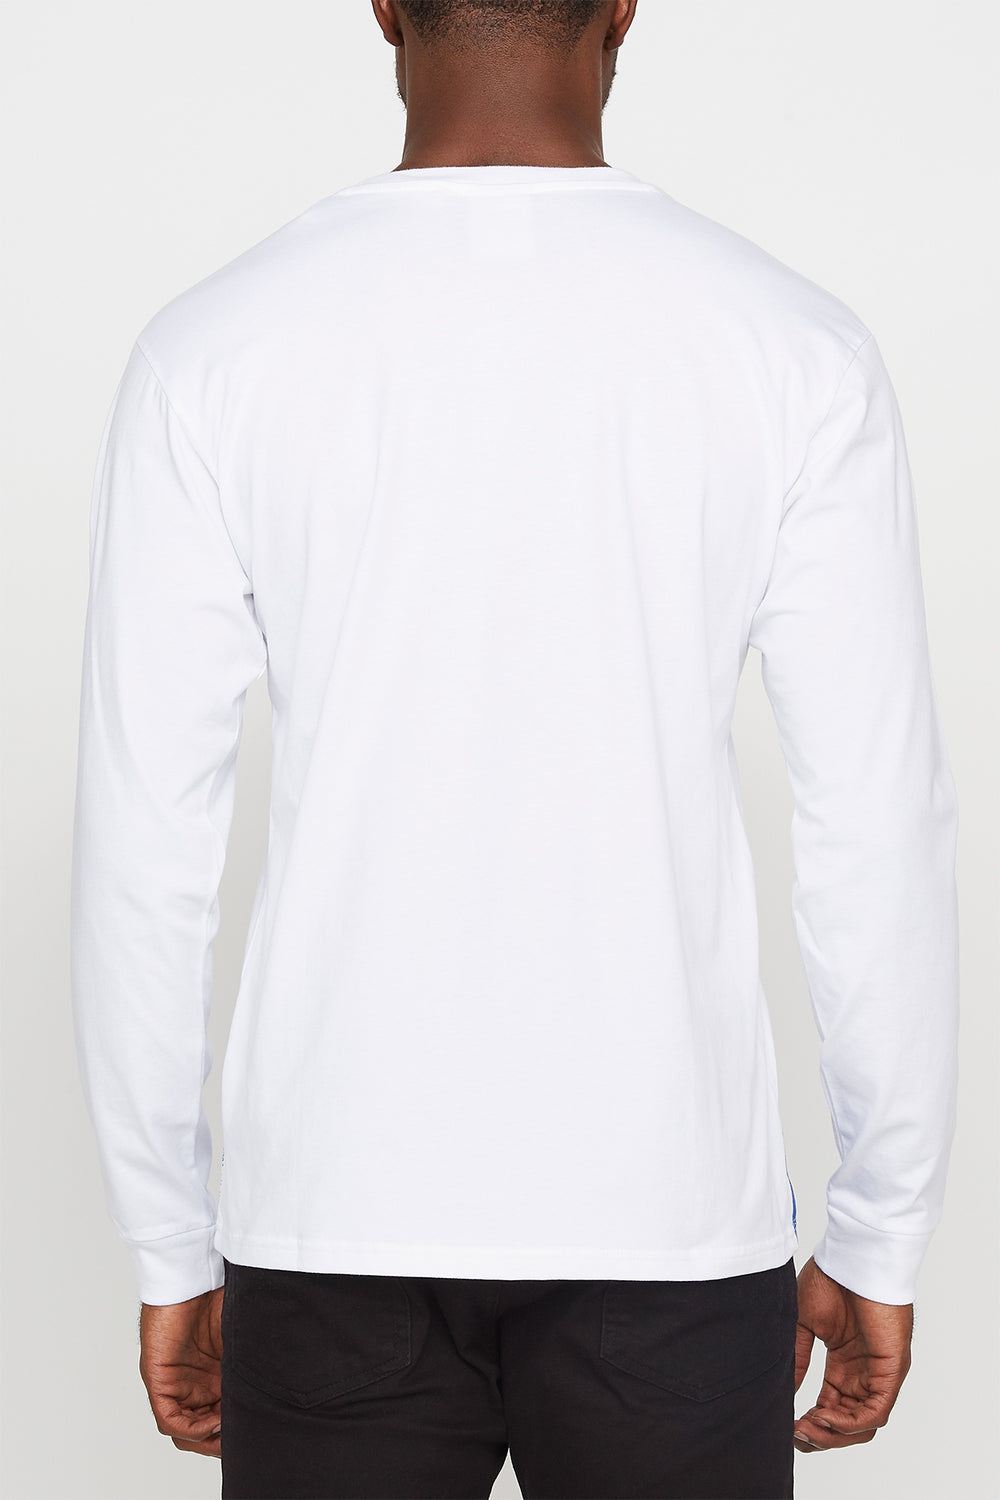 Adidas Mens Lacuna Long Sleeve White